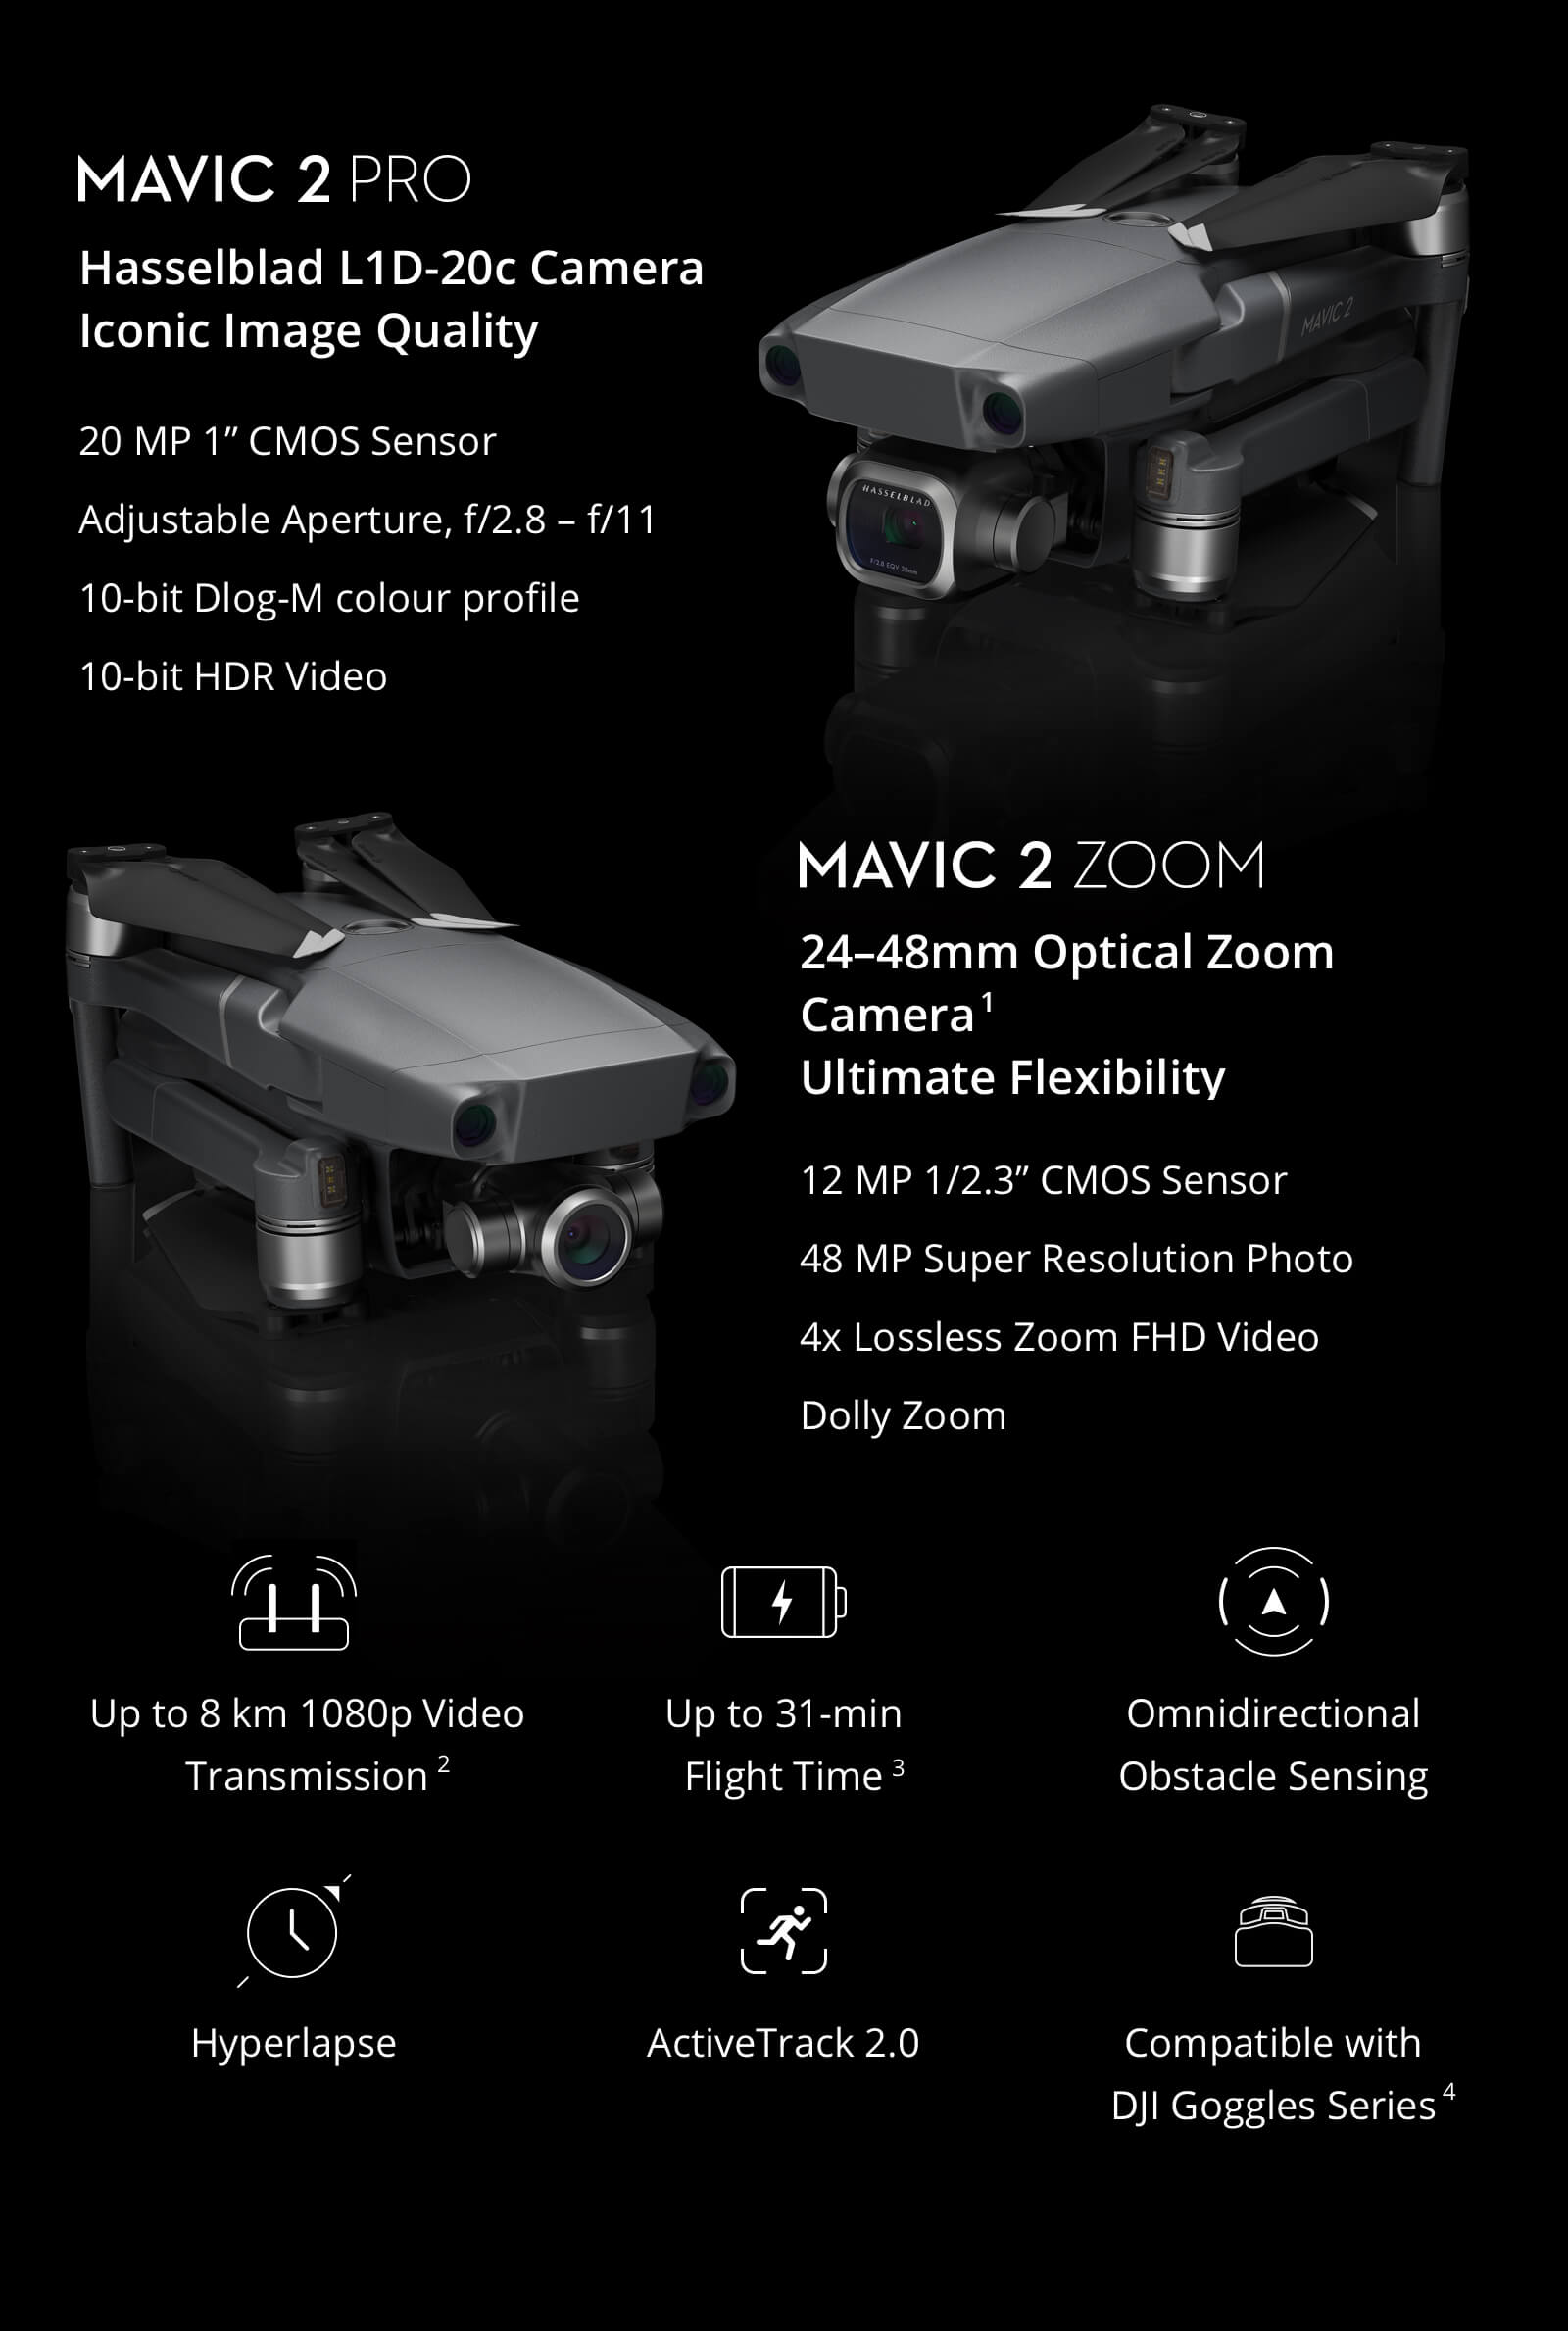 Mavic 2 Pro Quadcopter w/ 20MP Hasselblad Camera with Smart Controller 4